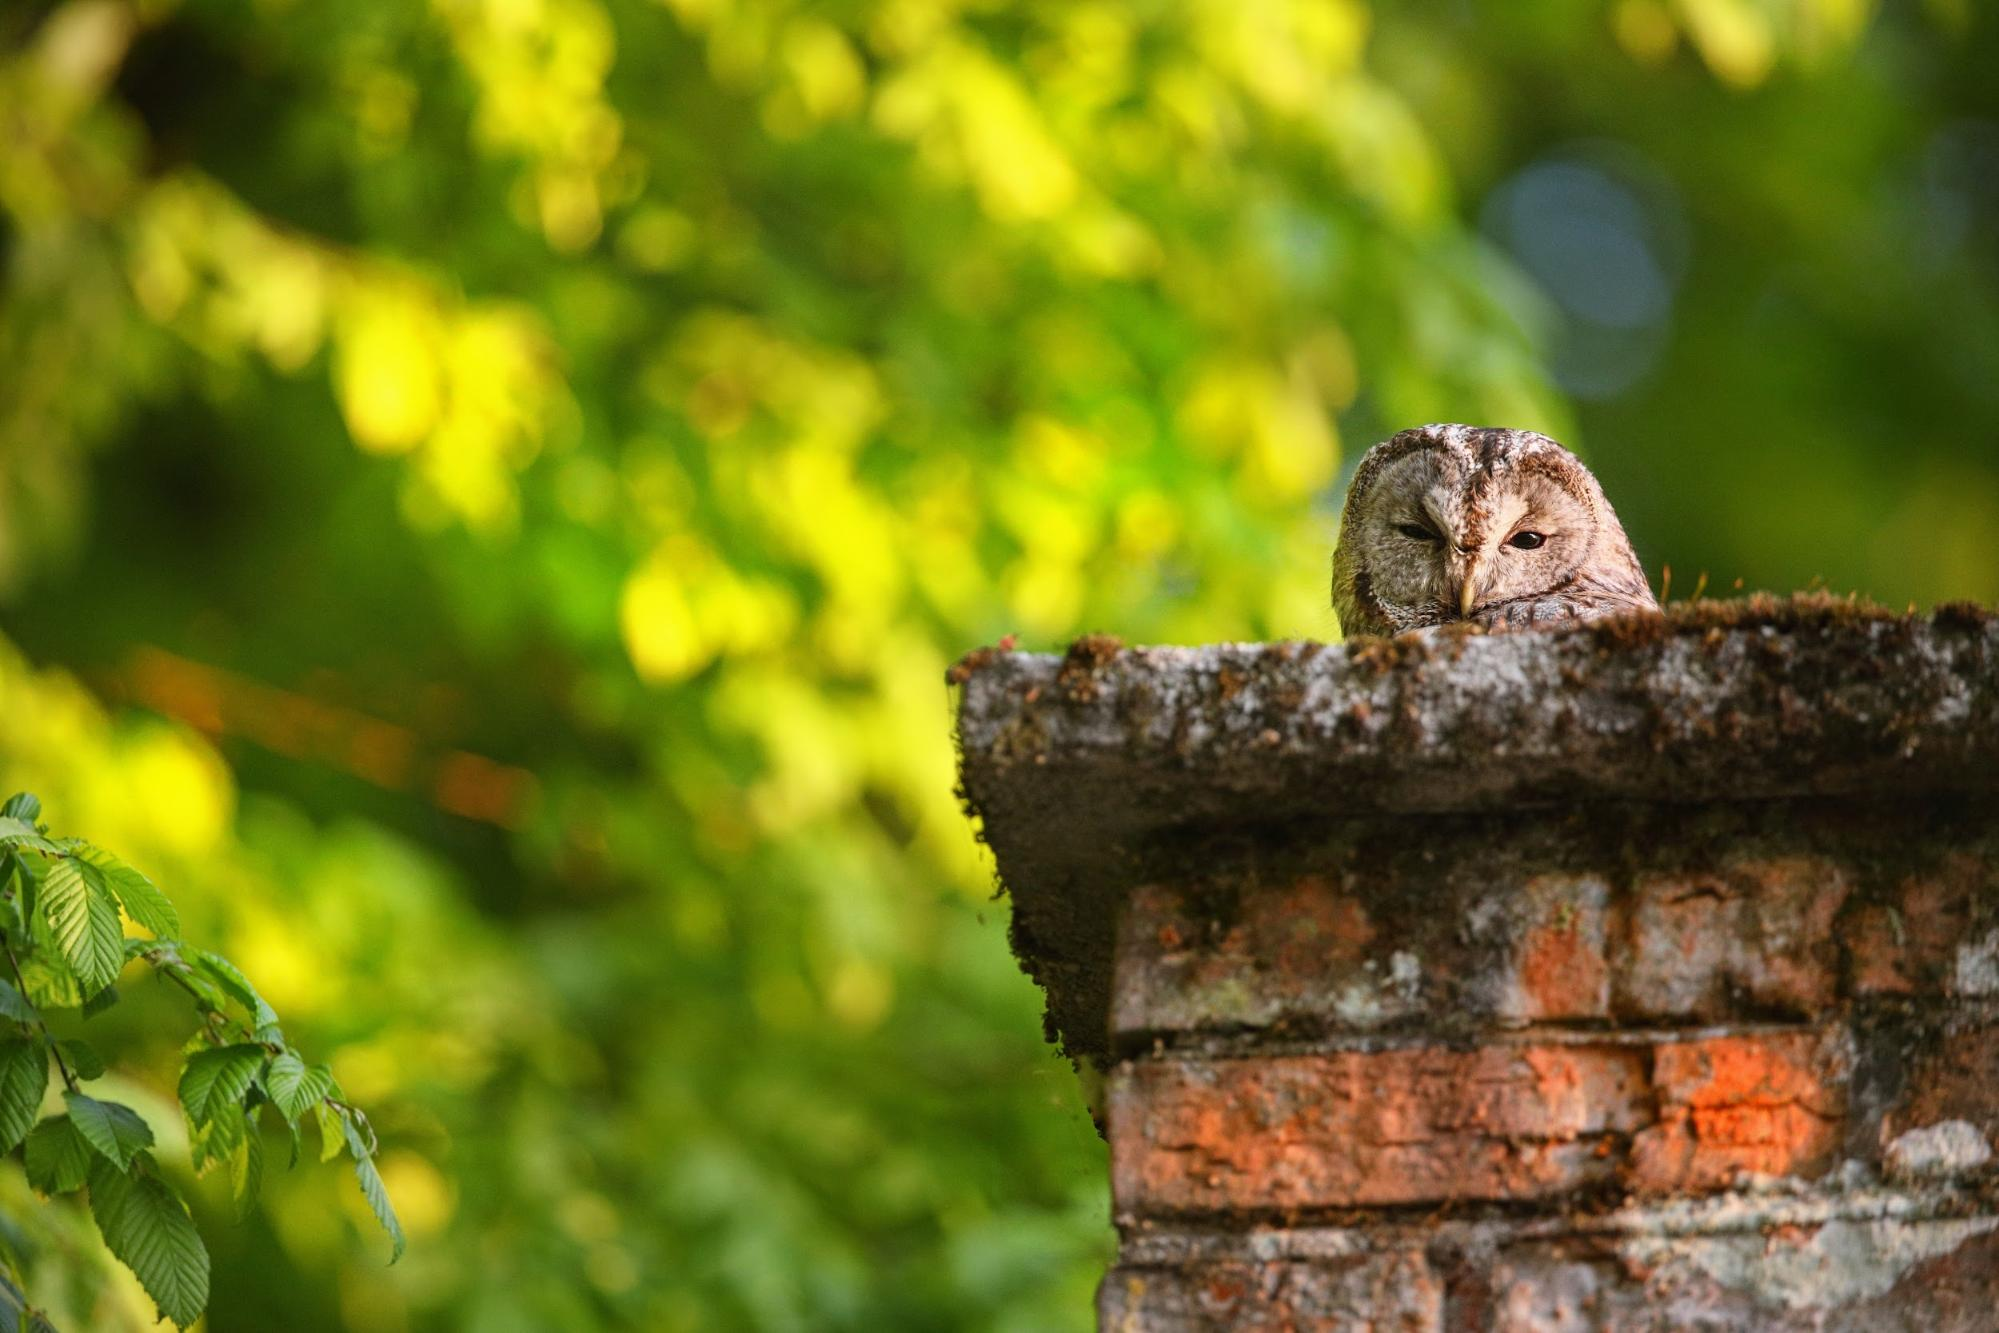 An owl who has built a nest in the crown of an old chimney. Birds who build their nests inside of active chimneys can put themselves and the homeowner at risk.